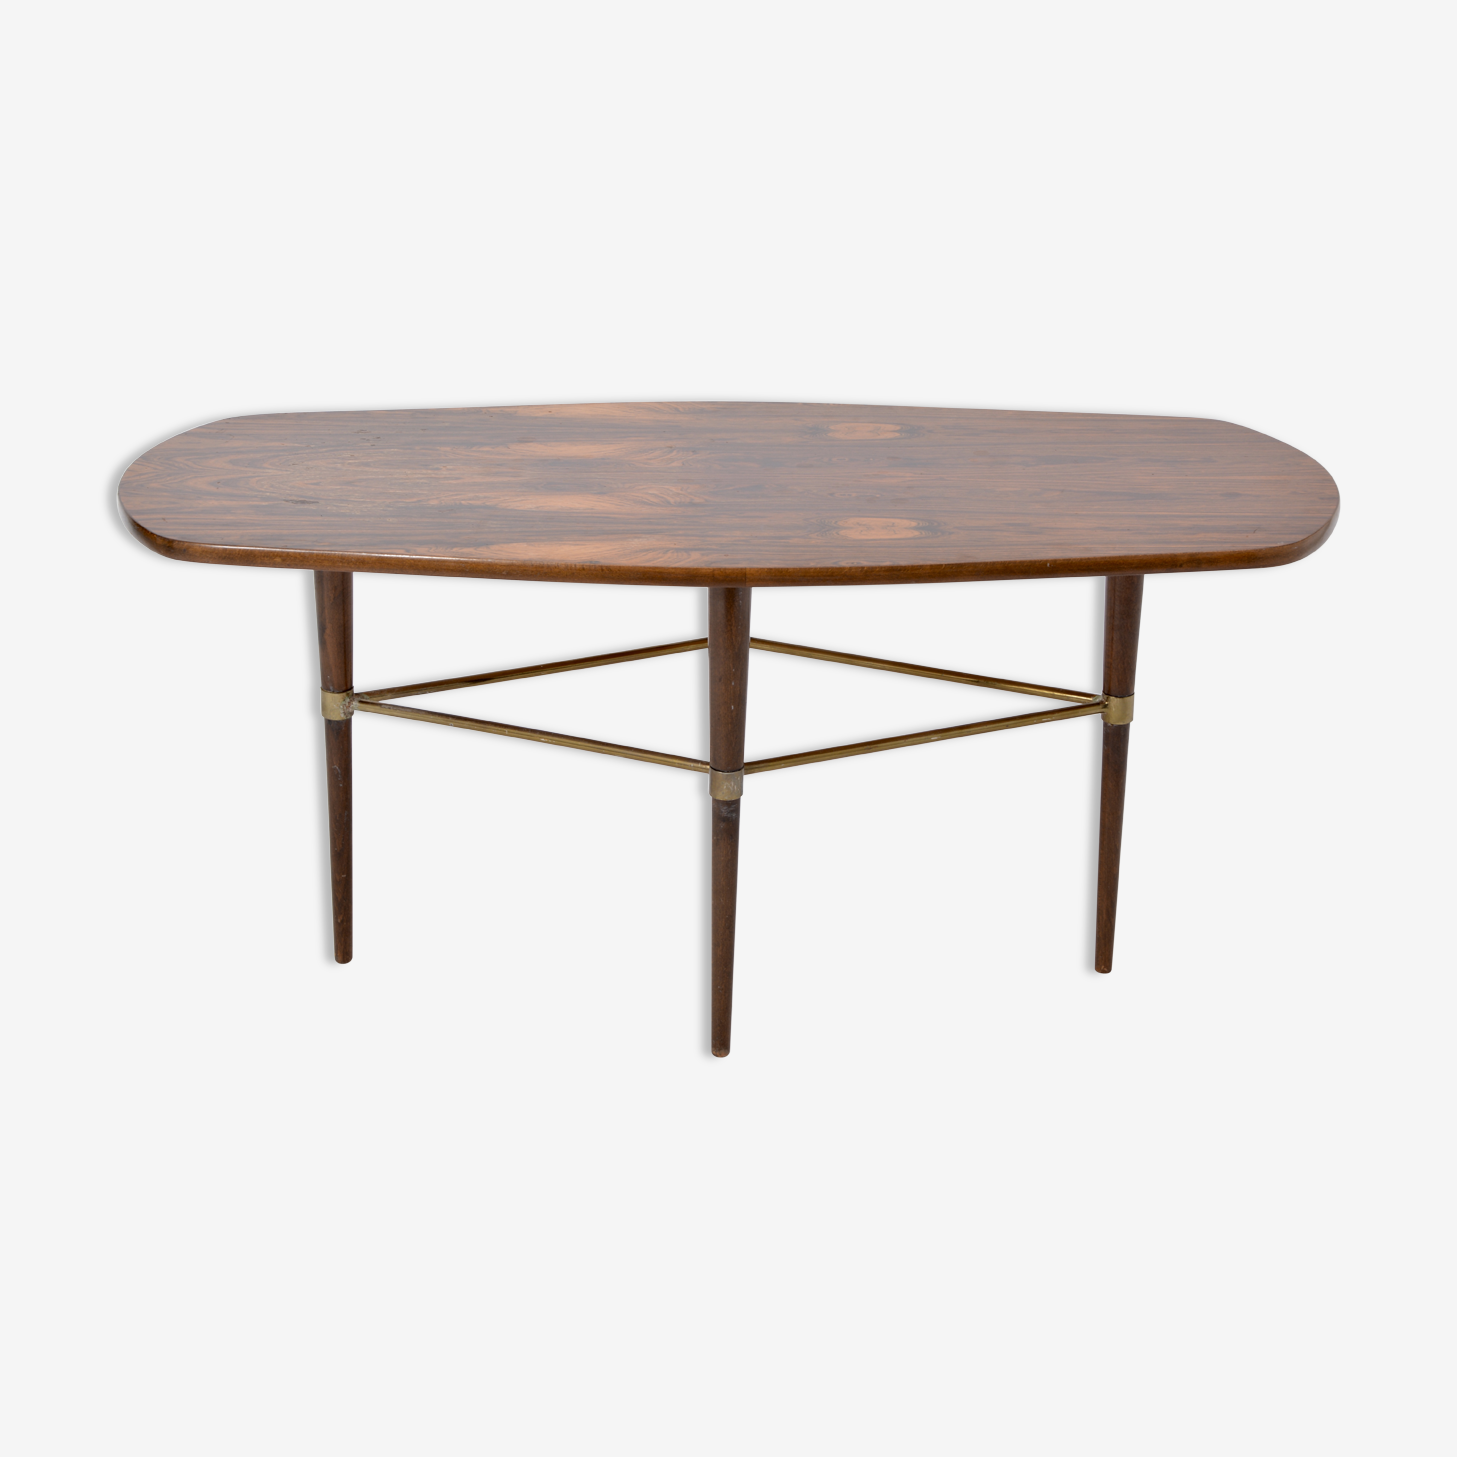 Swedish coffee table in rosewood and brass by Förenades Möbler